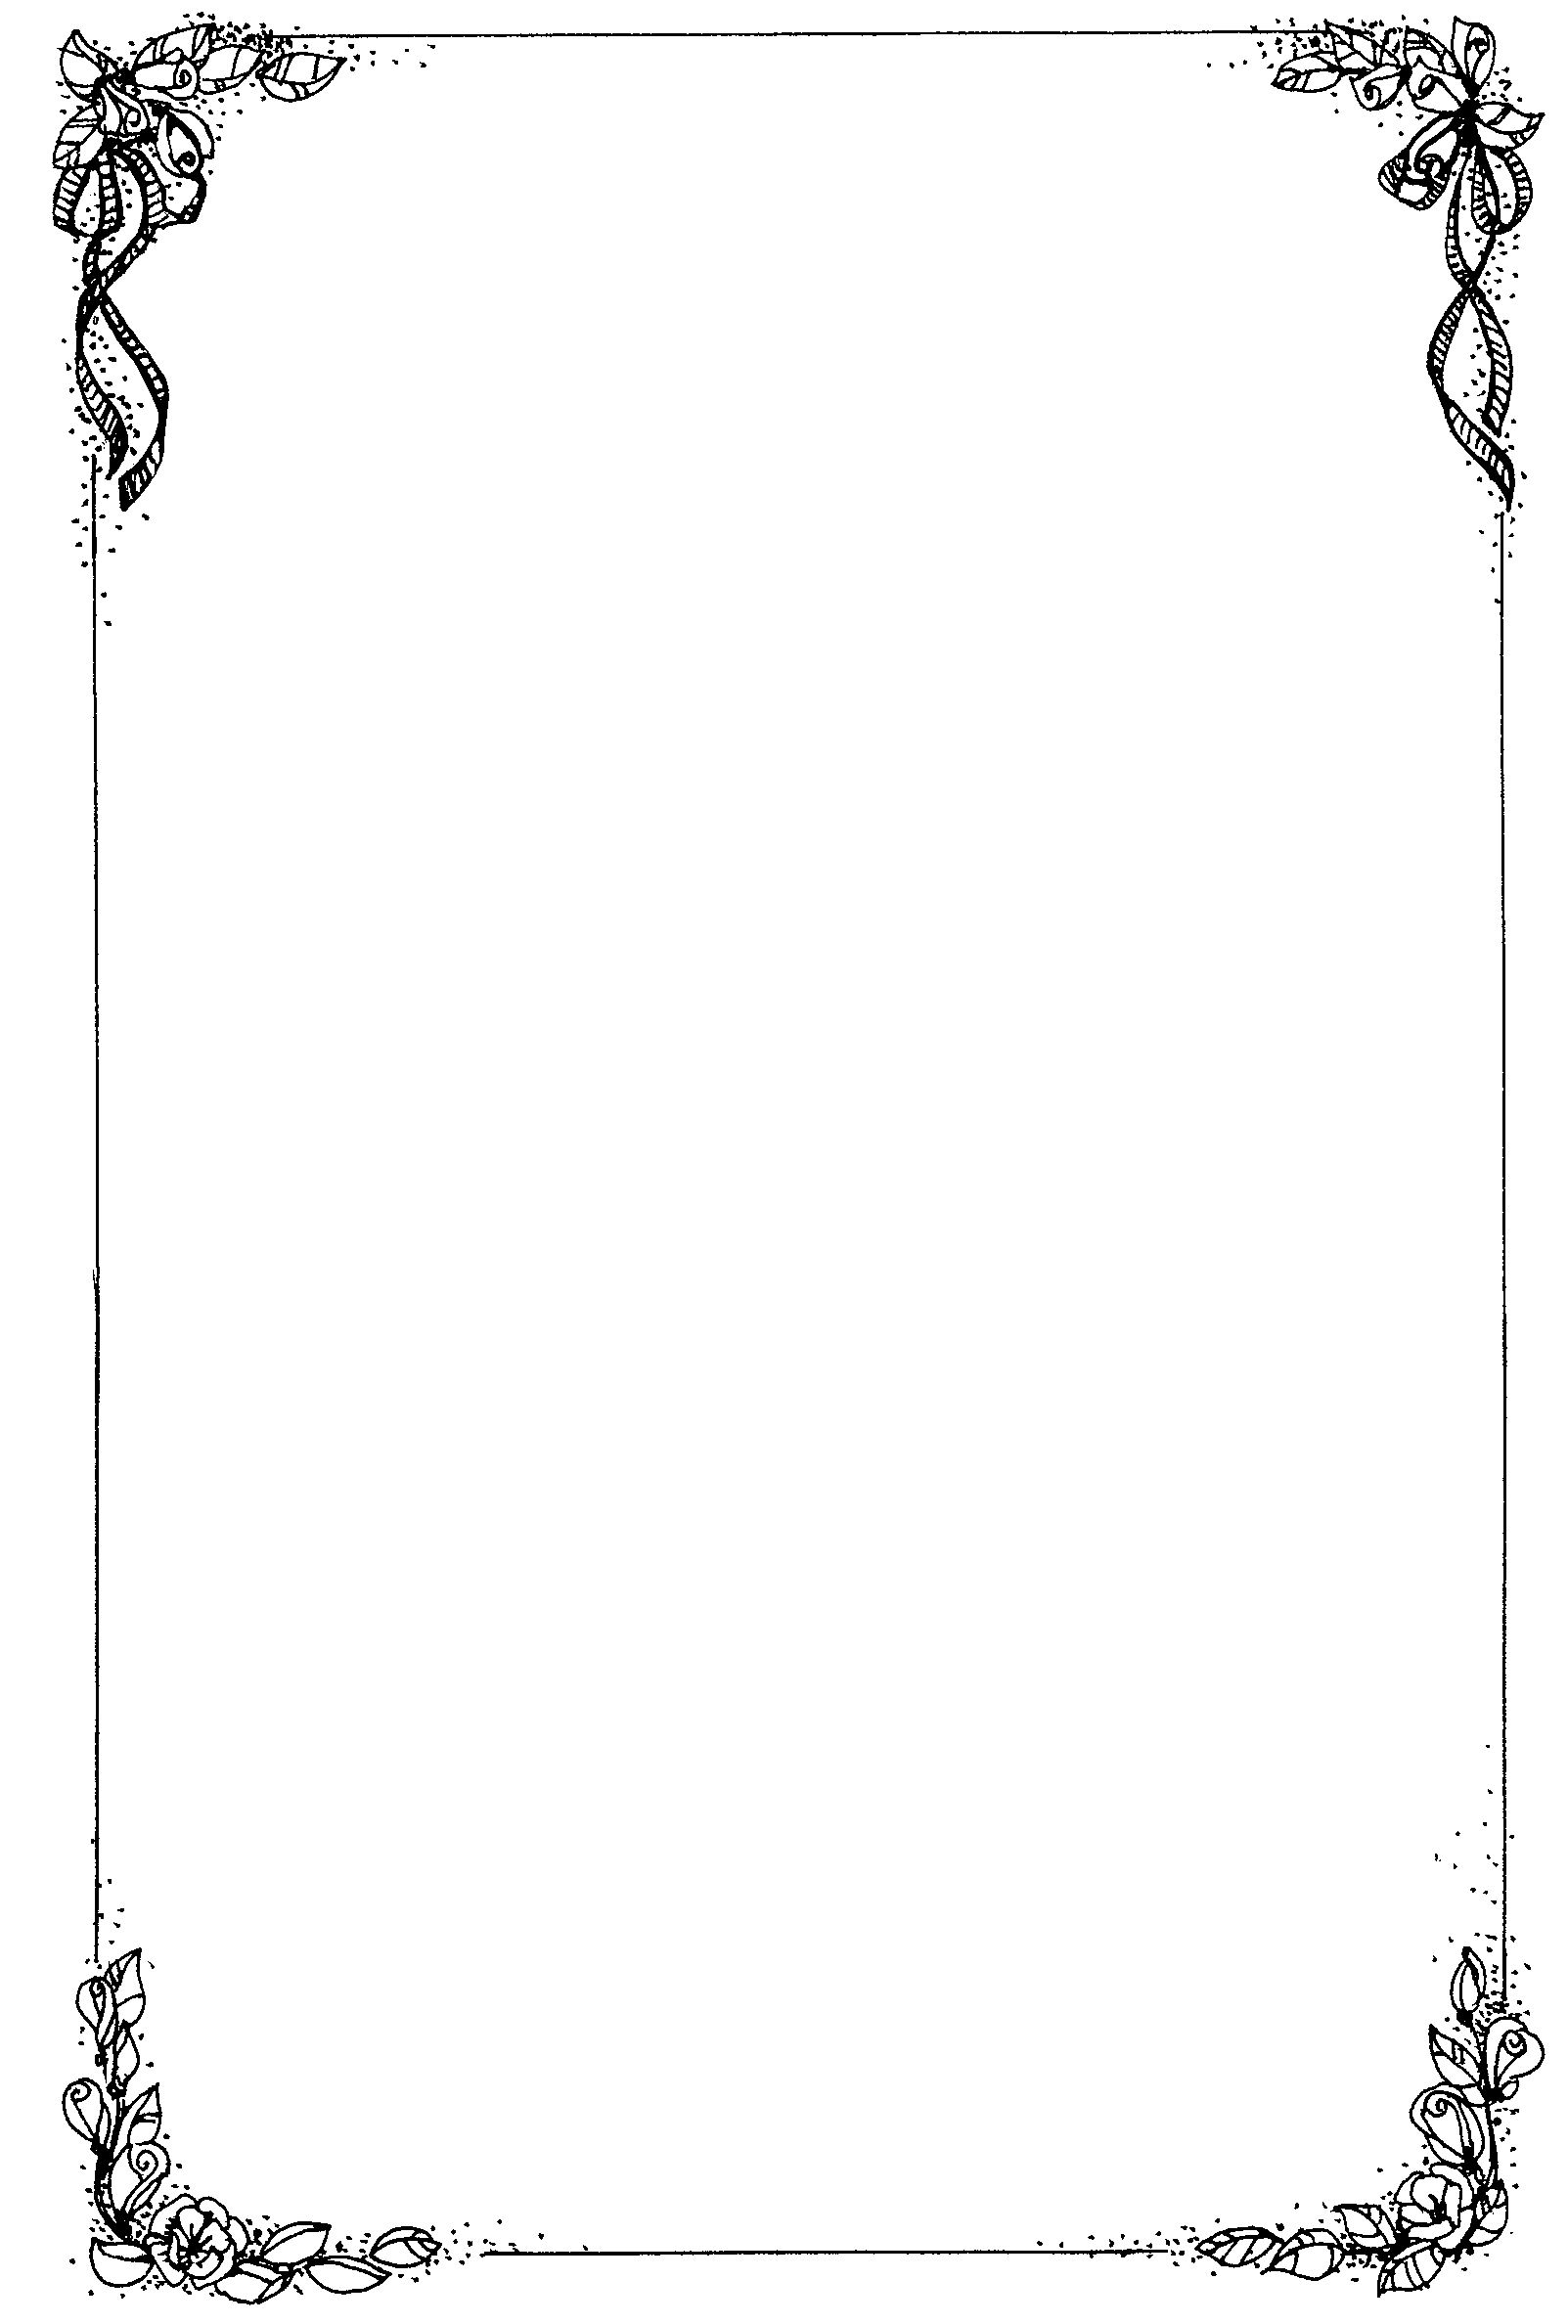 Rustic top boarder clipart black and white image royalty free download Free borders rustic wedding borders clipart - WikiClipArt image royalty free download